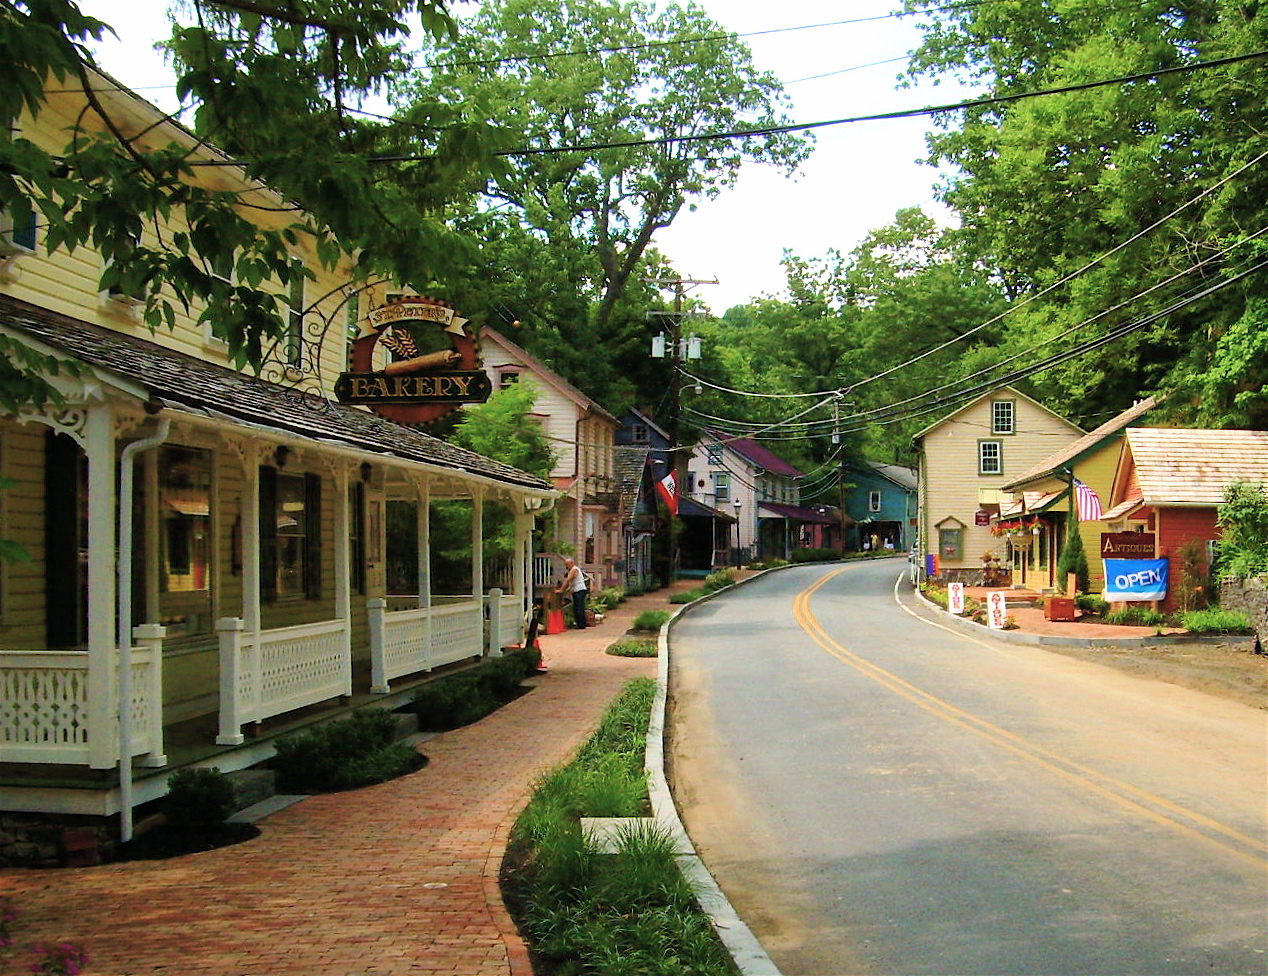 A street running through a small town near Philadelphia. The street is lined with houses and shops. The house in the foreground has a porch with a white fence. There are trees in the background.